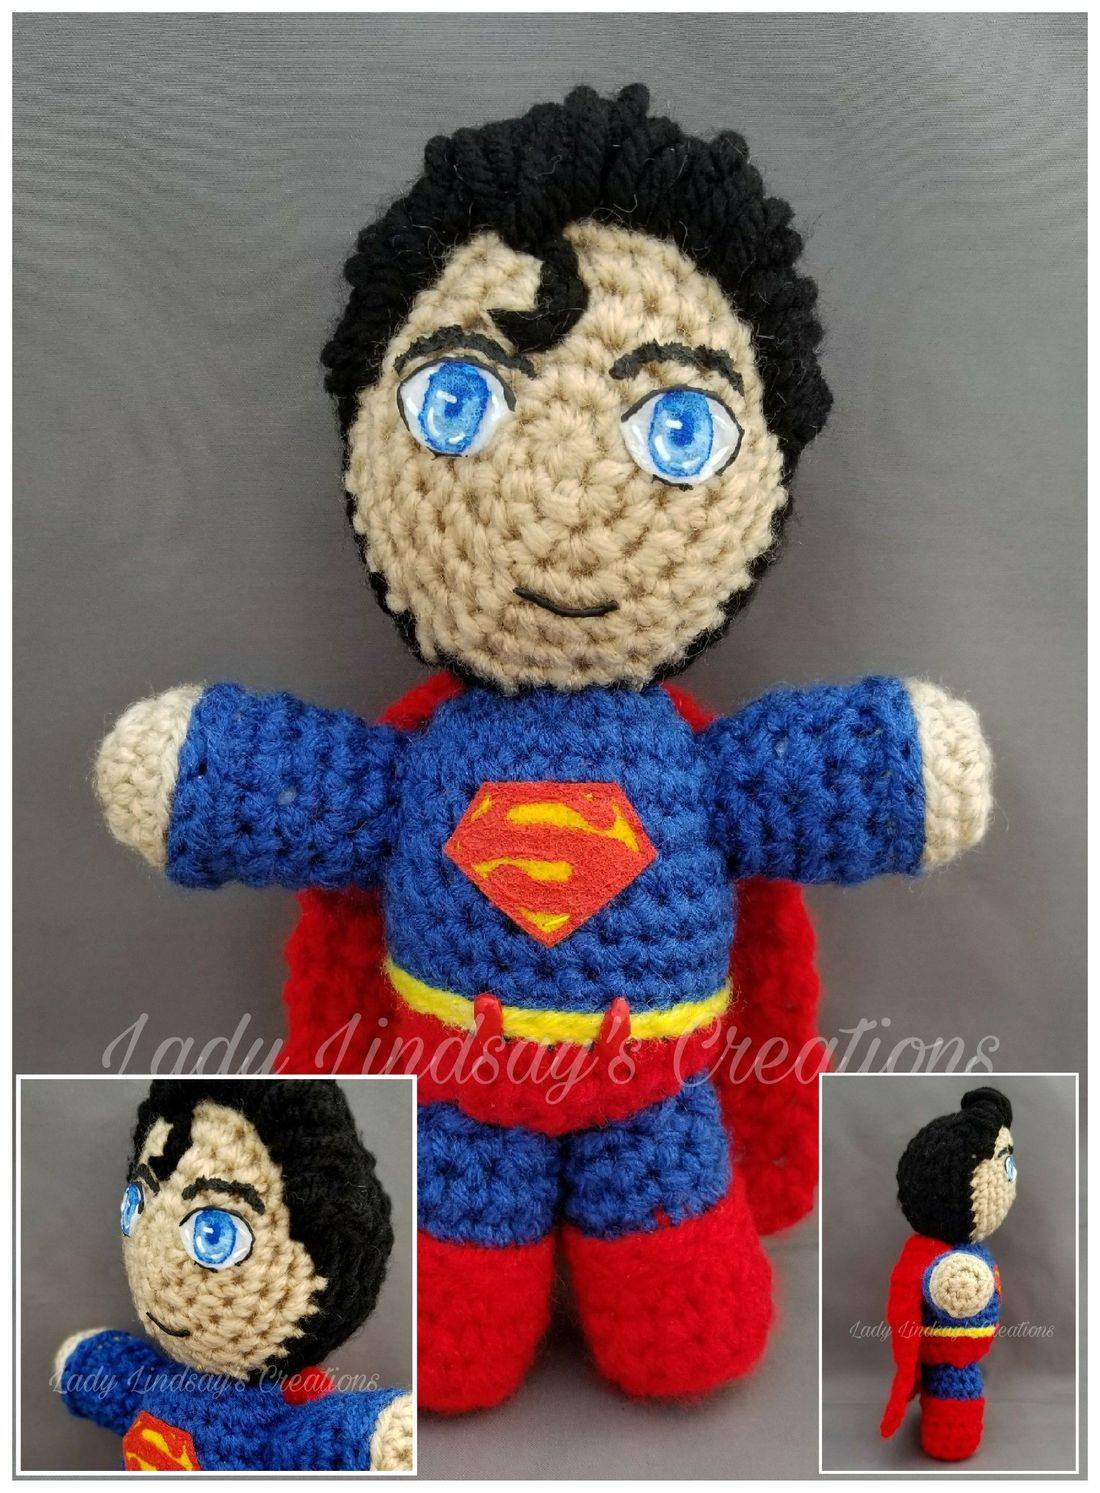 Superman, Clark Kent, Man of Steel, amigurumi, plush, crochet, Etsy, Shop Small, nerd, geek, otaku, anime, comicbook, superhero,